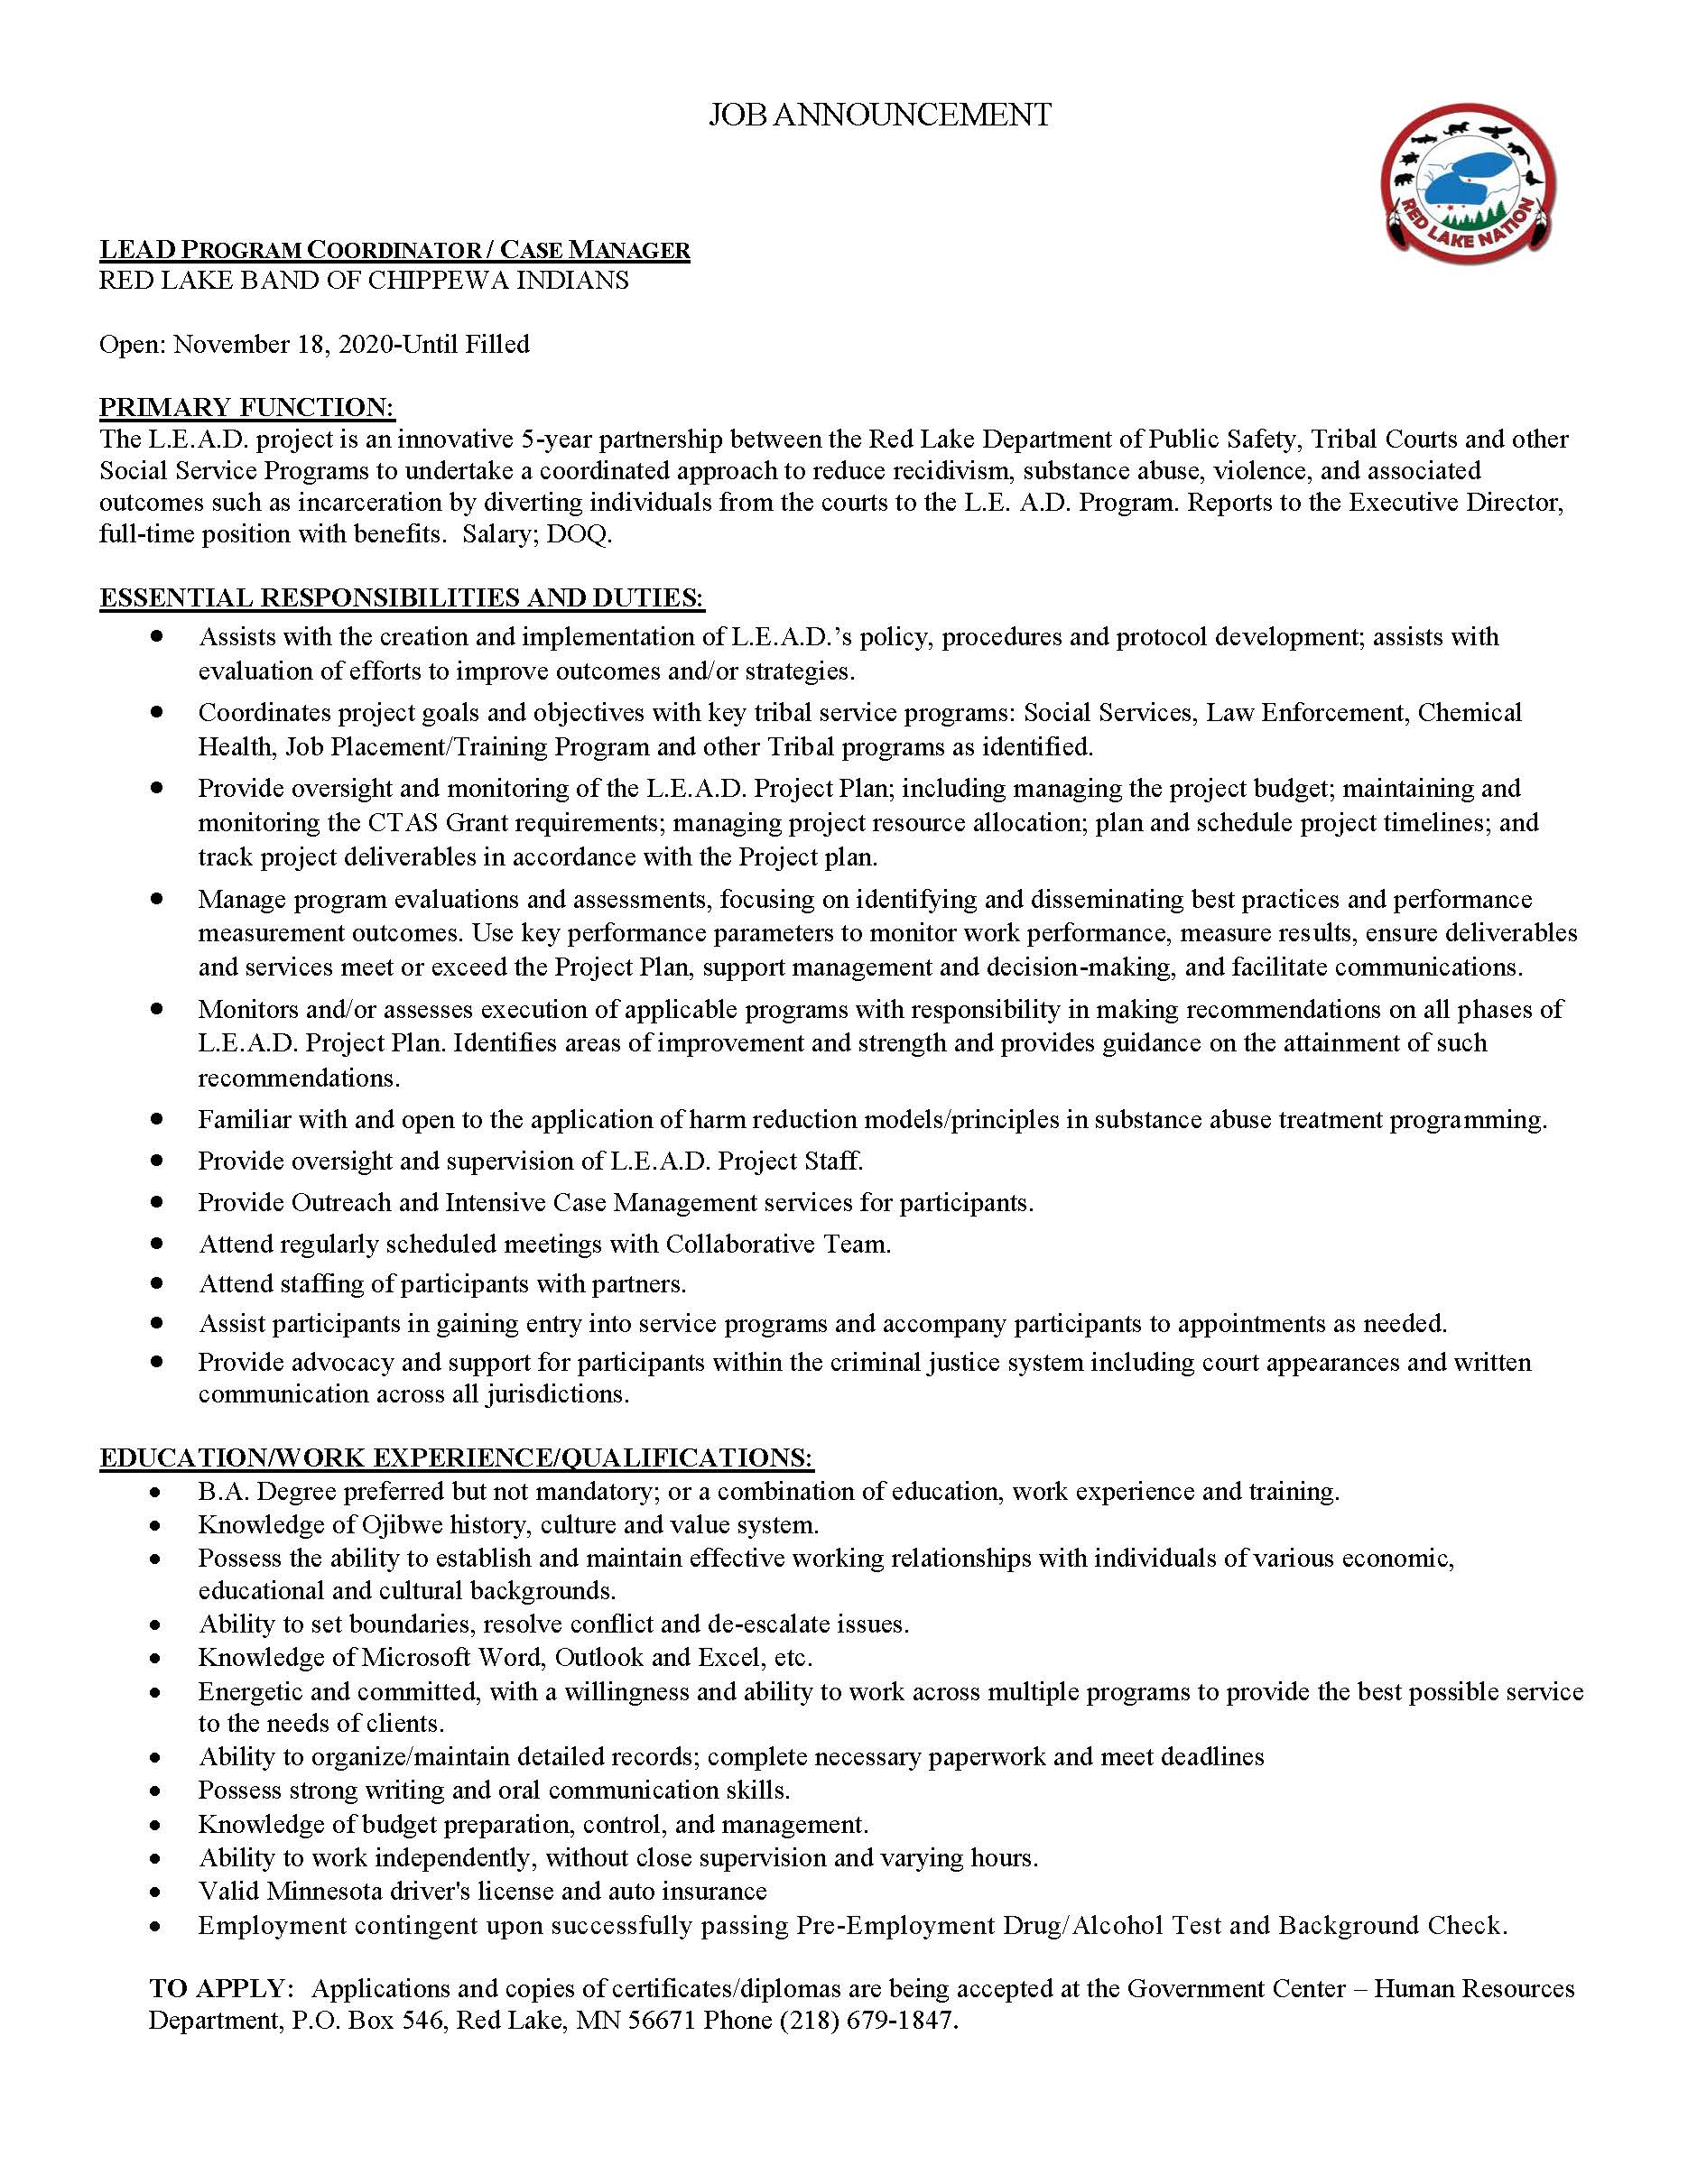 LEAD Program Coordinator Case Manager-Red Lake Band of Chippewa Indians-Job Posting 11-18-20